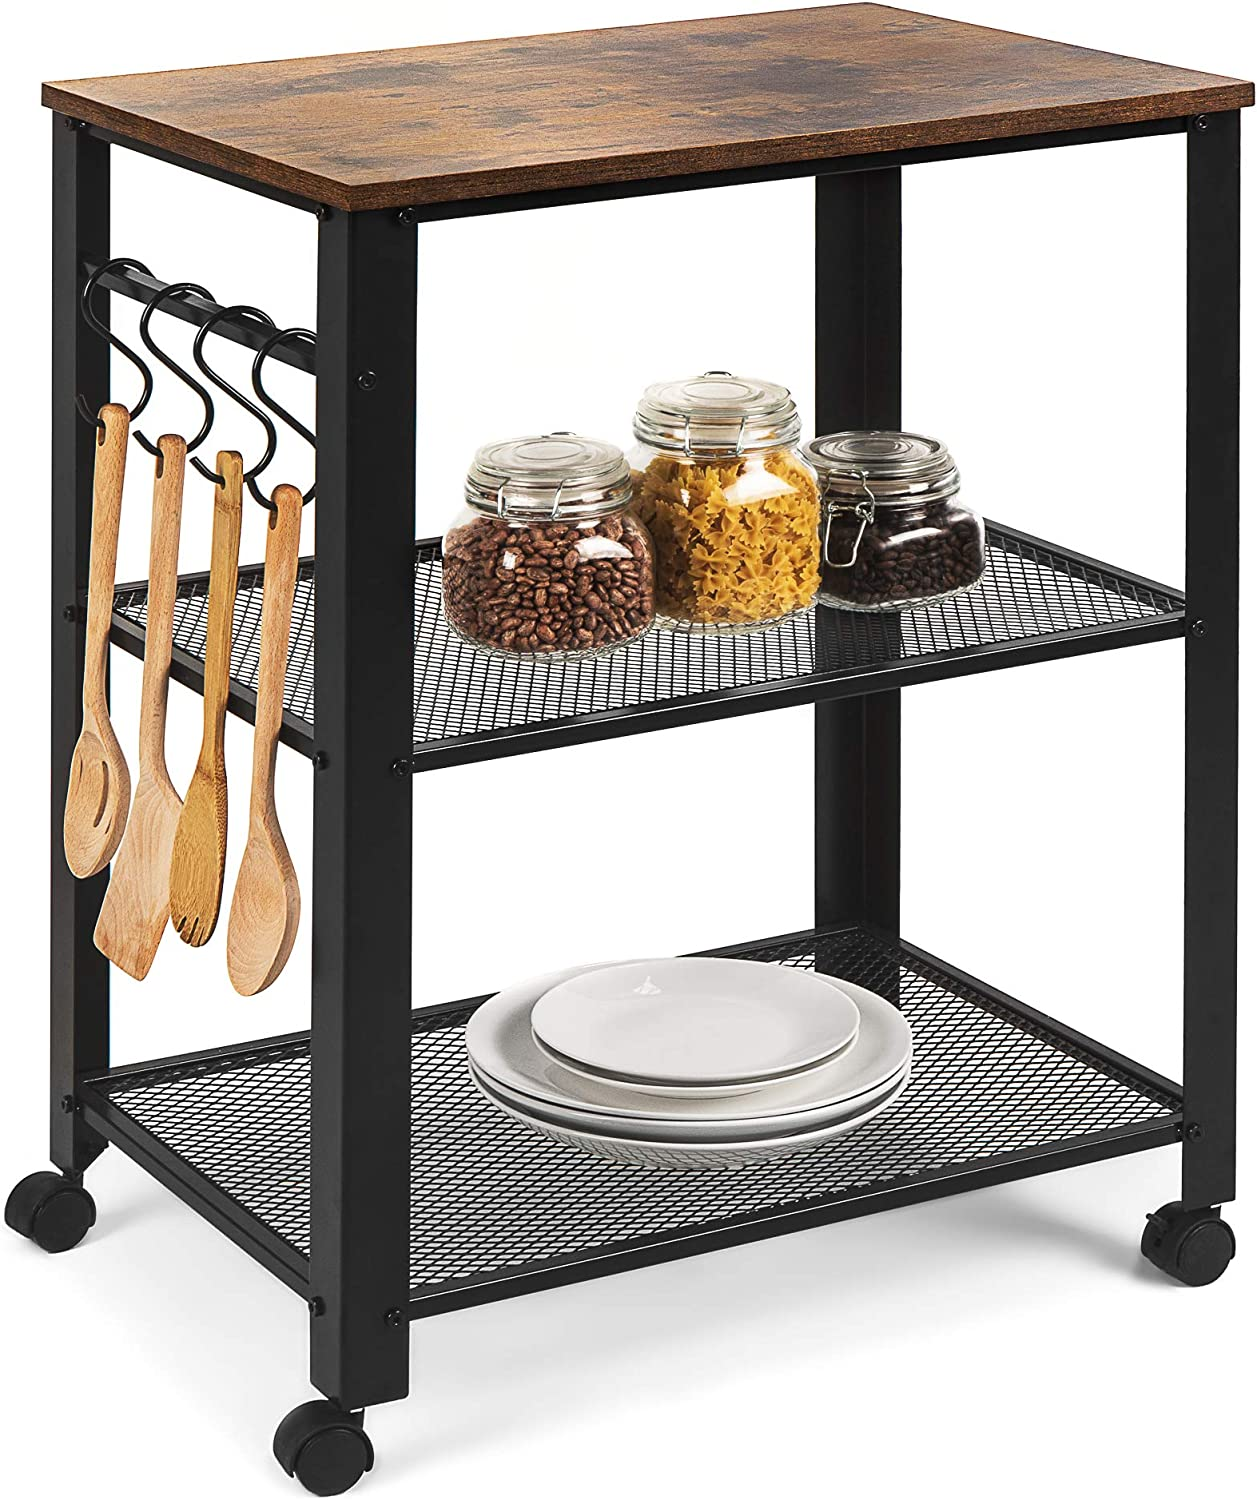 Best Choice Products 3-Tier Rustic Industrial Rolling Utility Serving Cart Organizer